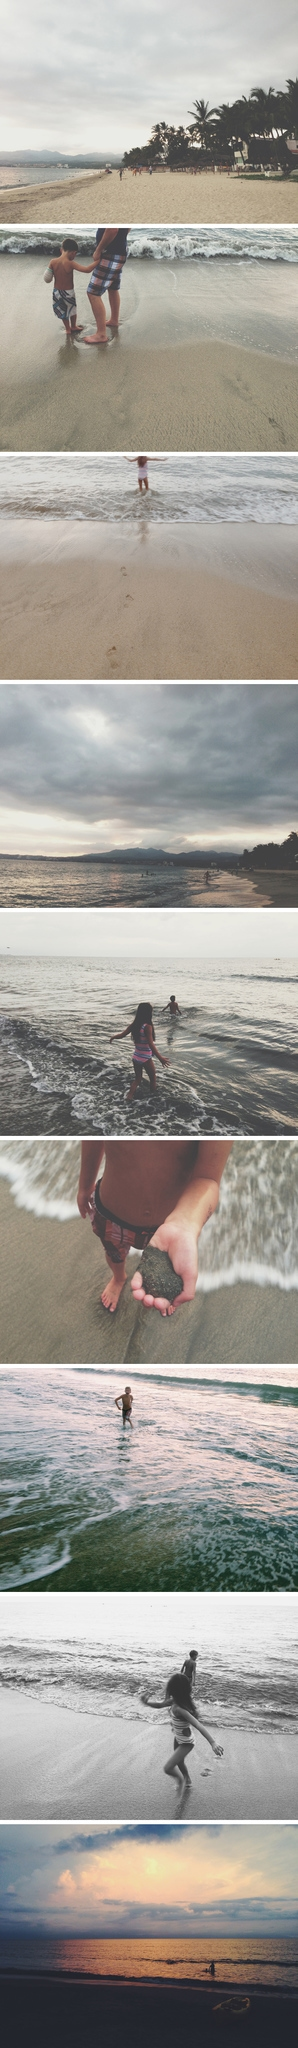 iPhone Shots of Mexico - Thorson Photography